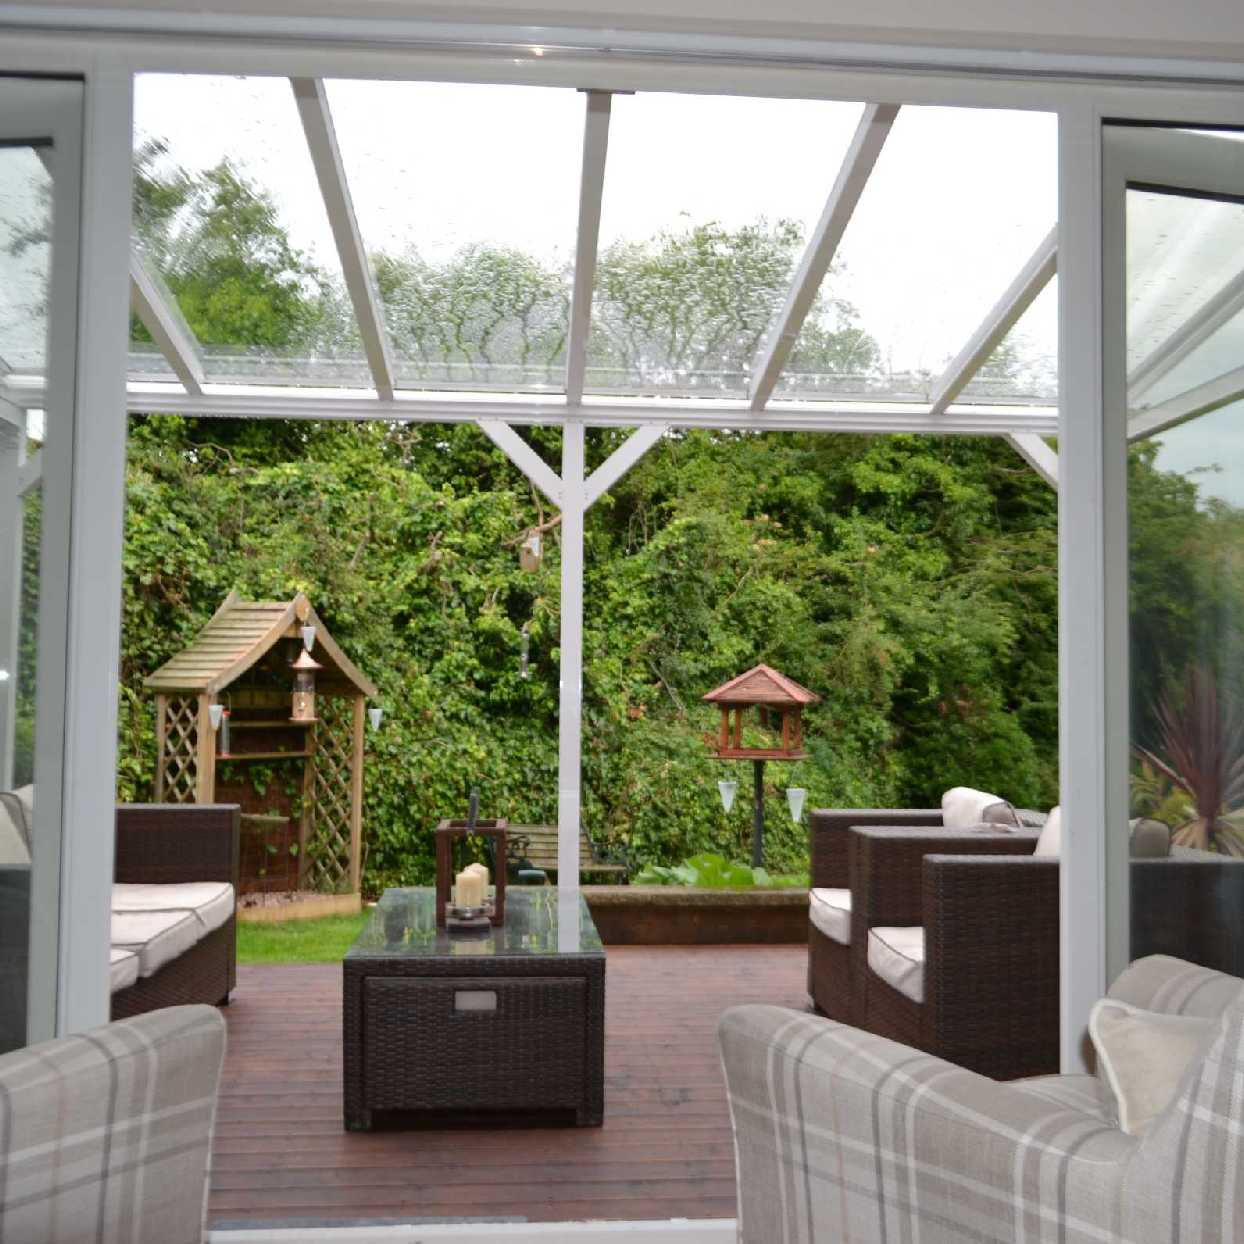 Great selection of Omega Smart White Lean-To Canopy with 6mm Glass Clear Plate Polycarbonate Glazing - 4.2m (W) x 3.0m (P), (3) Supporting Posts